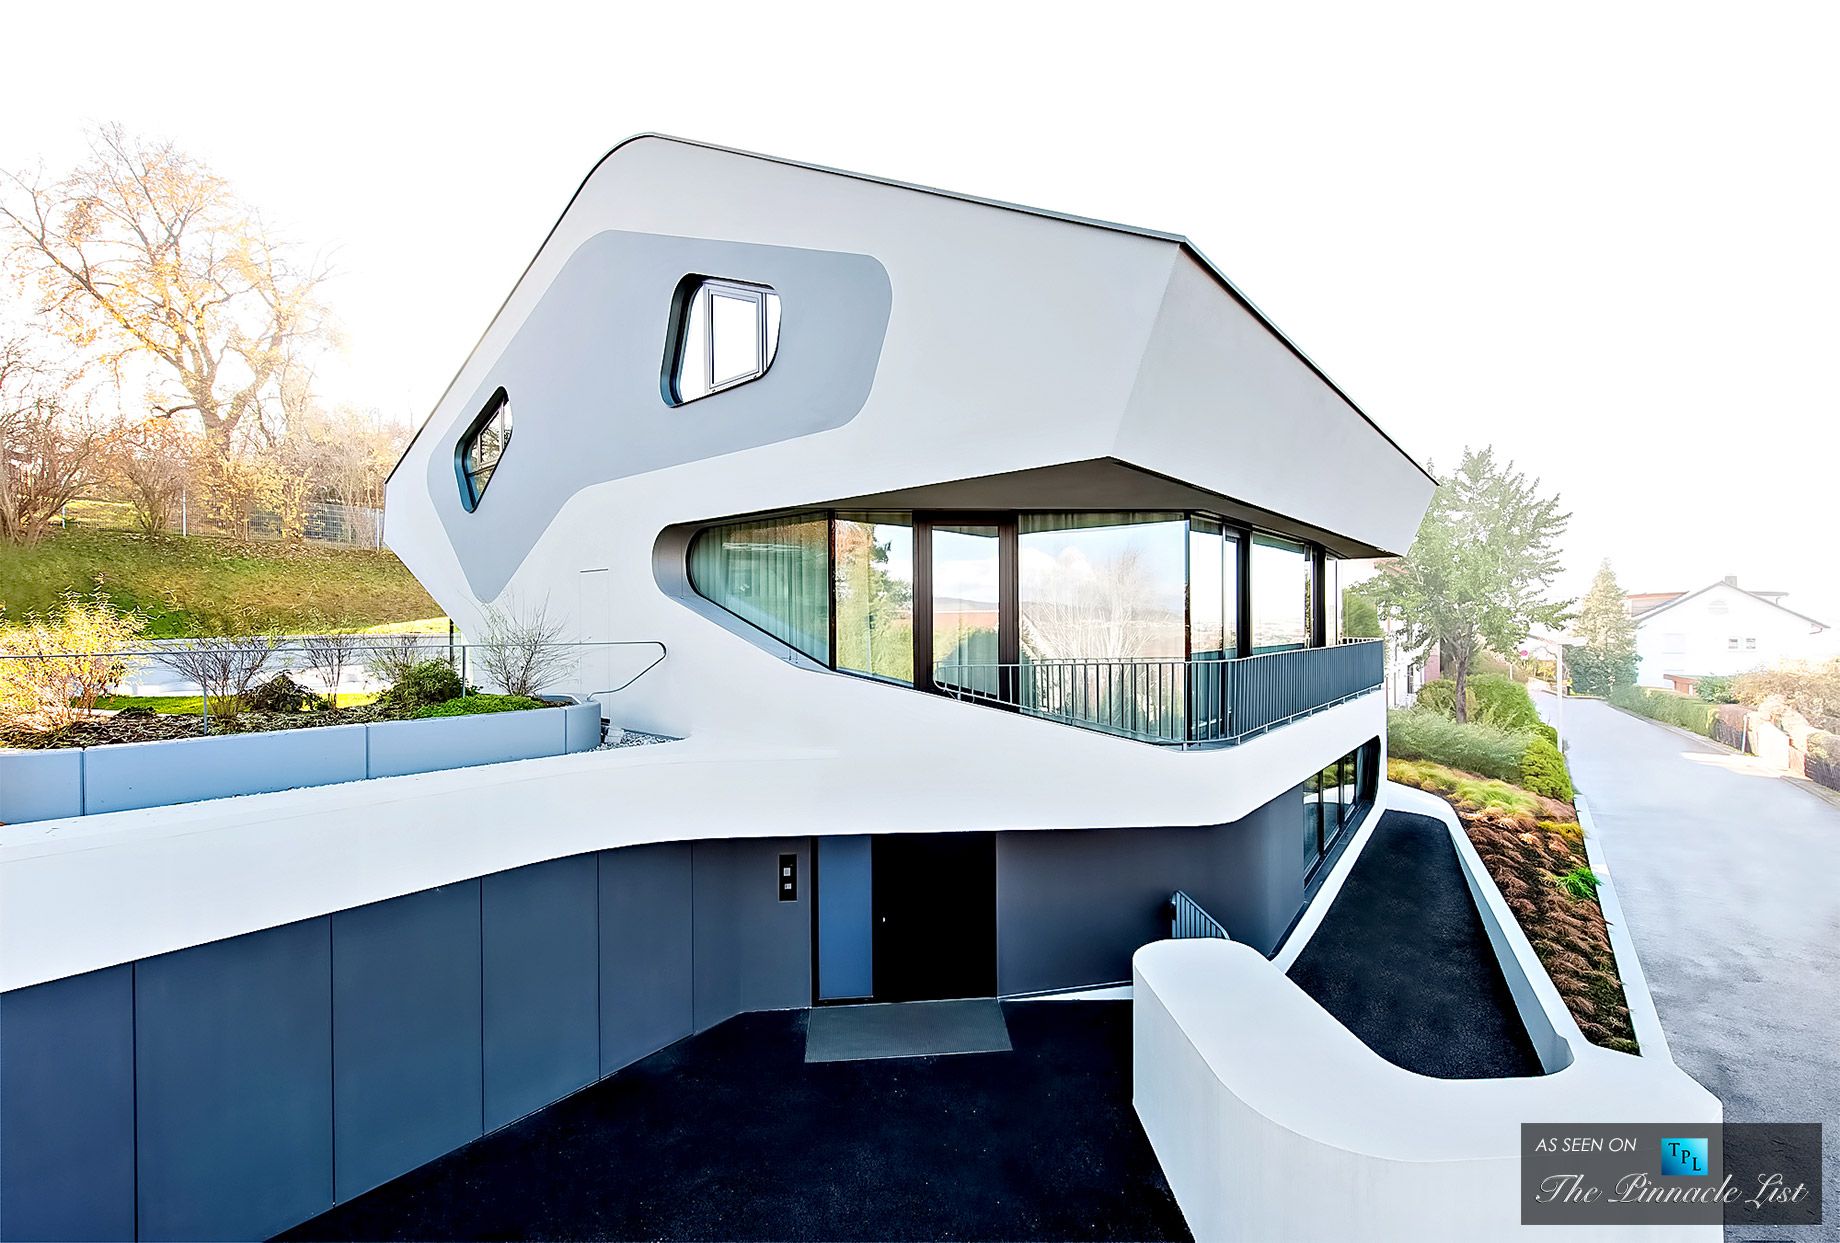 Modern Architecture at the Futuristic OLS House in Stuttgart, Germany